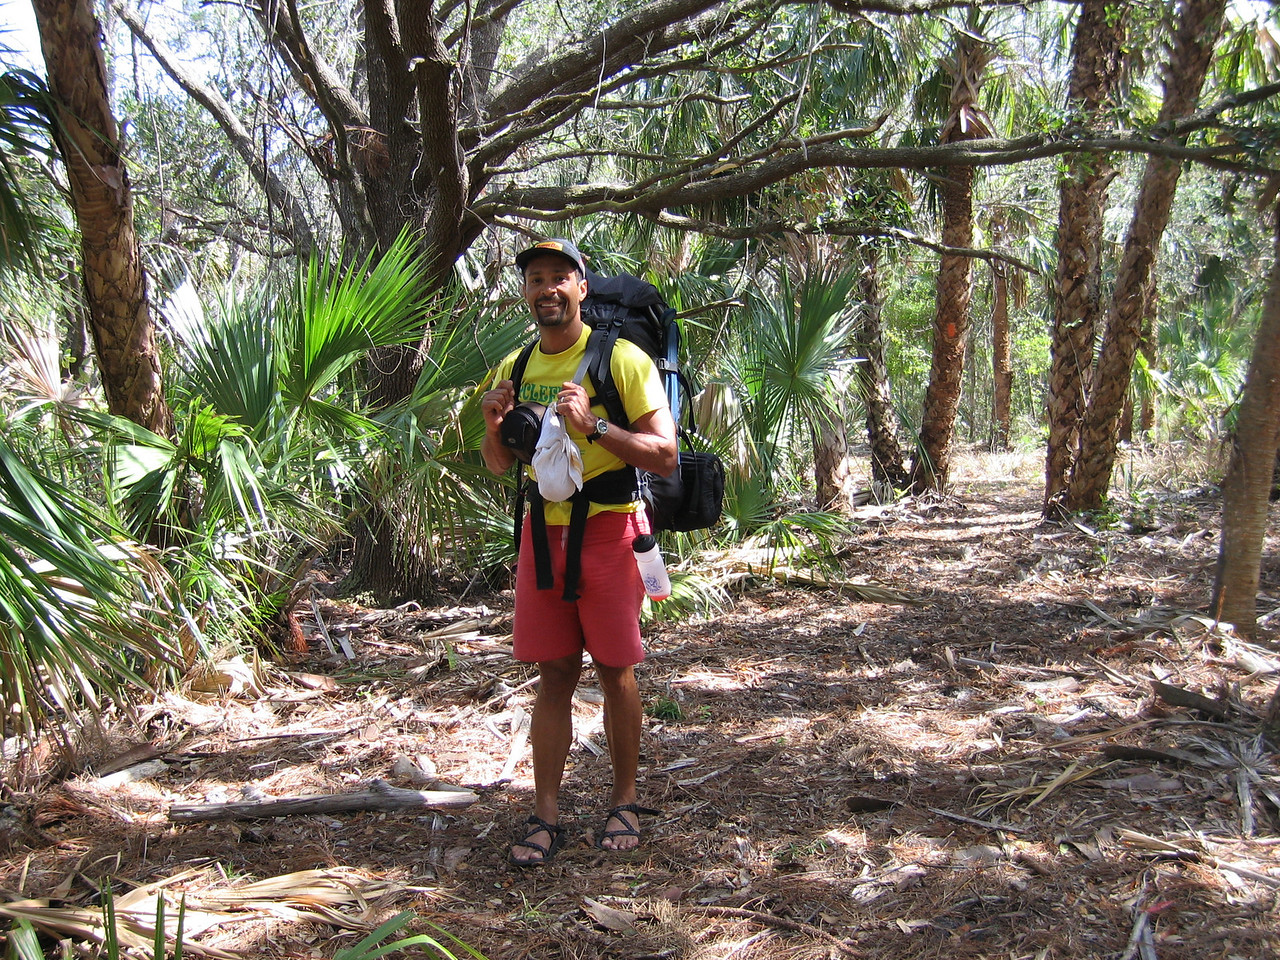 Happy to be in the hammock<br /> photo credit: Raphael Clemente / Florida Trail Association